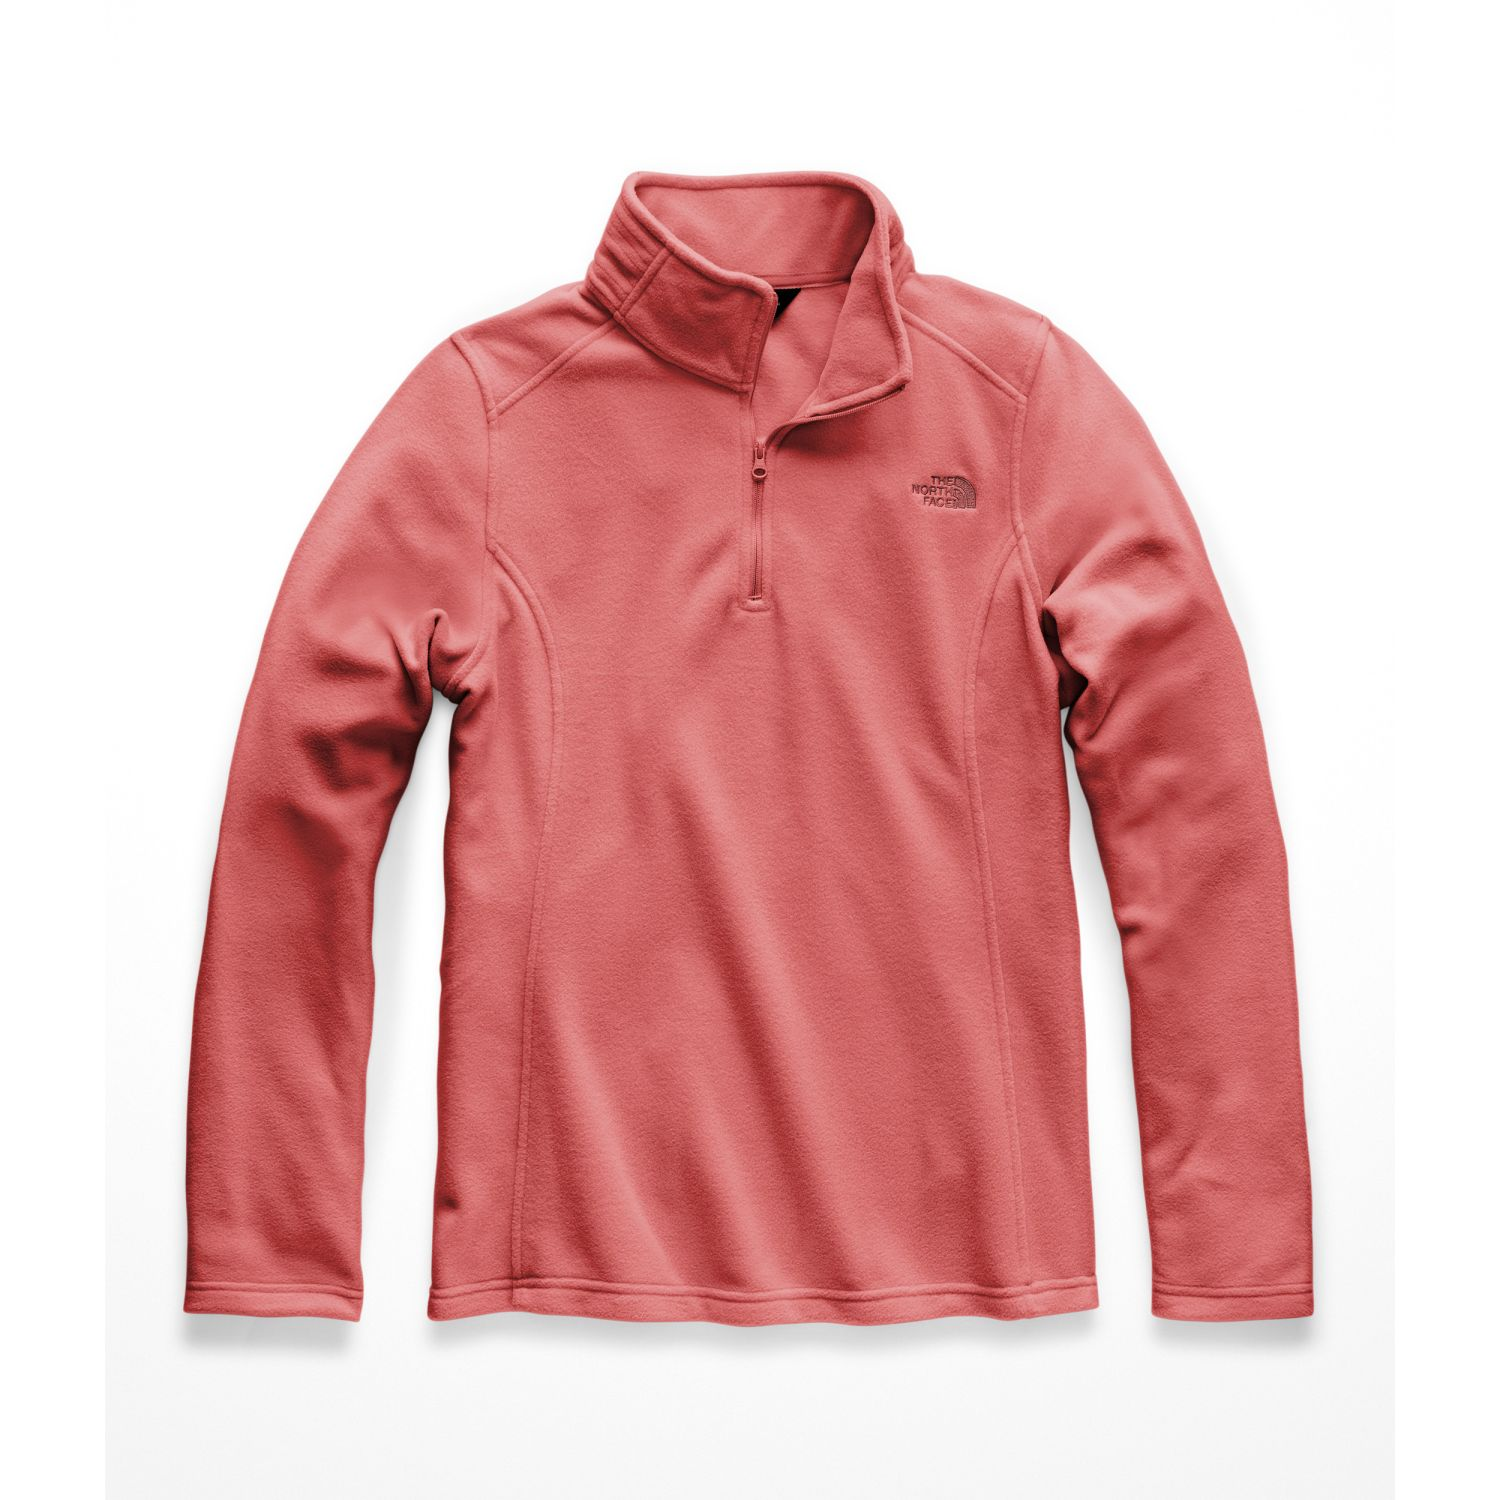 The North Face w glacier 1/4 zip Coral Pullovers